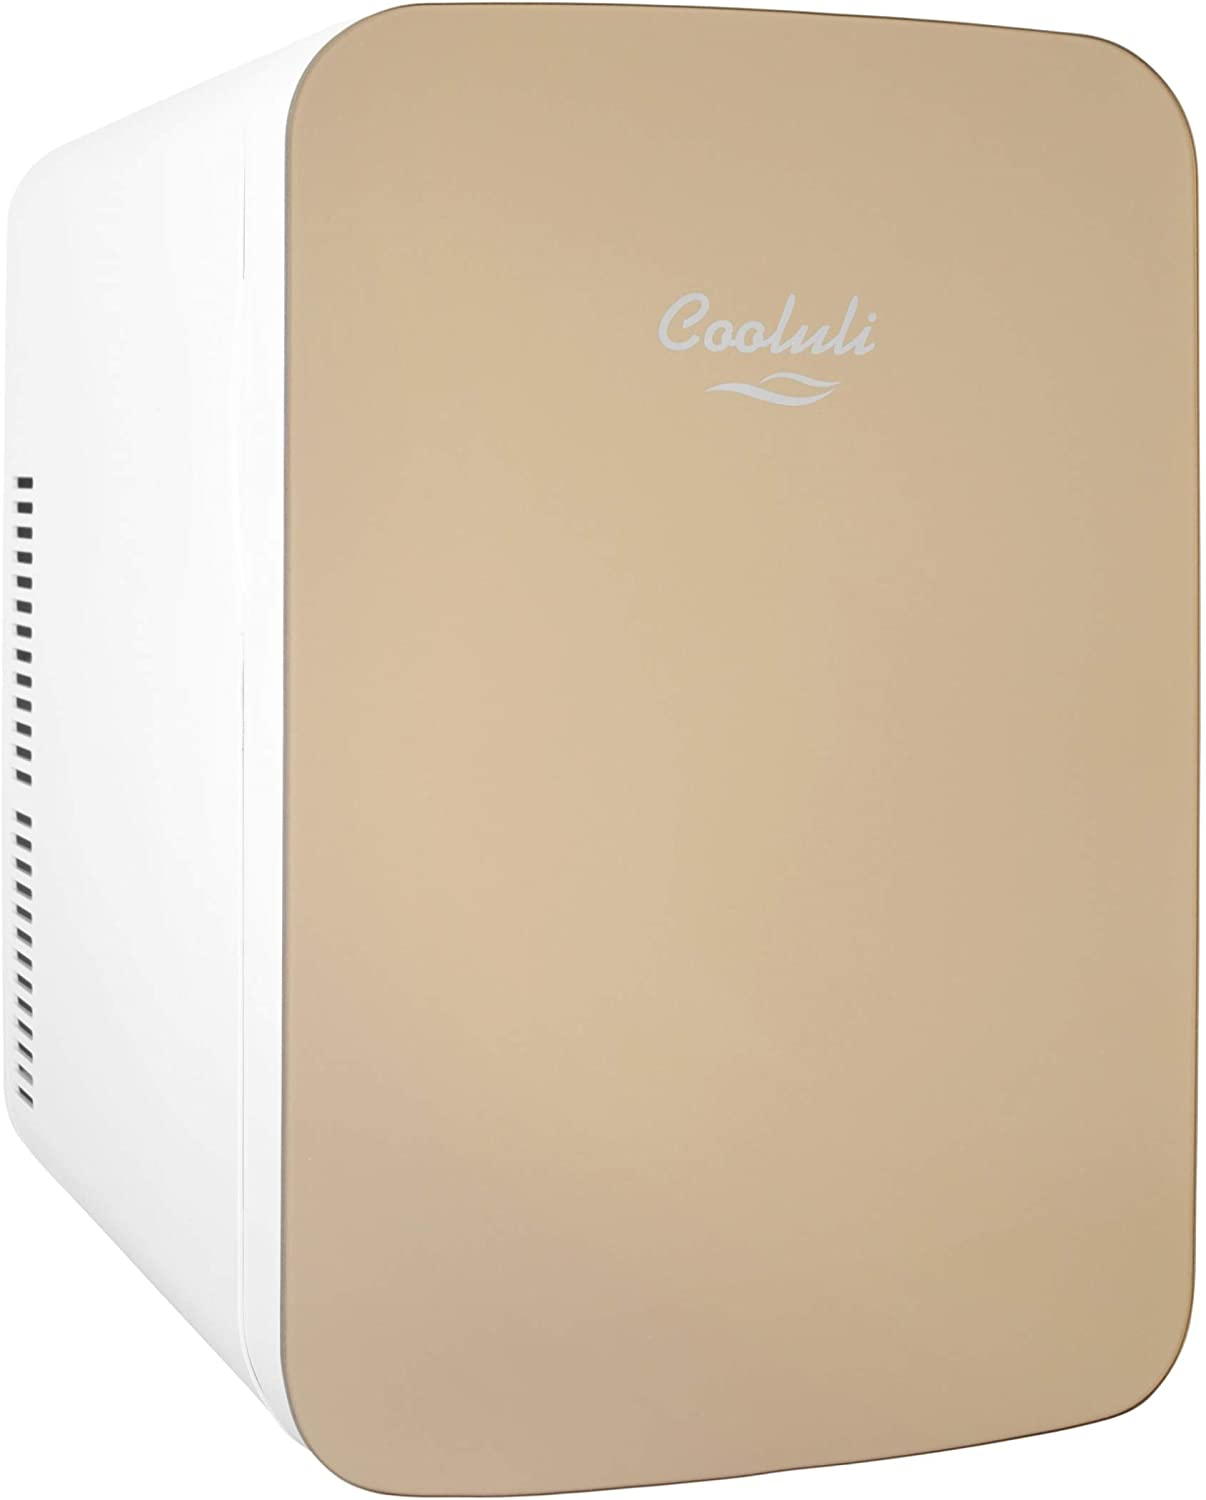 Cooluli Infinity Gold 15 Liter Compact Portable Cooler Warmer Mini Fridge for Bedroom, Office, Dorm, Car - Great for Skincare & Cosmetics (110-240V/12V)